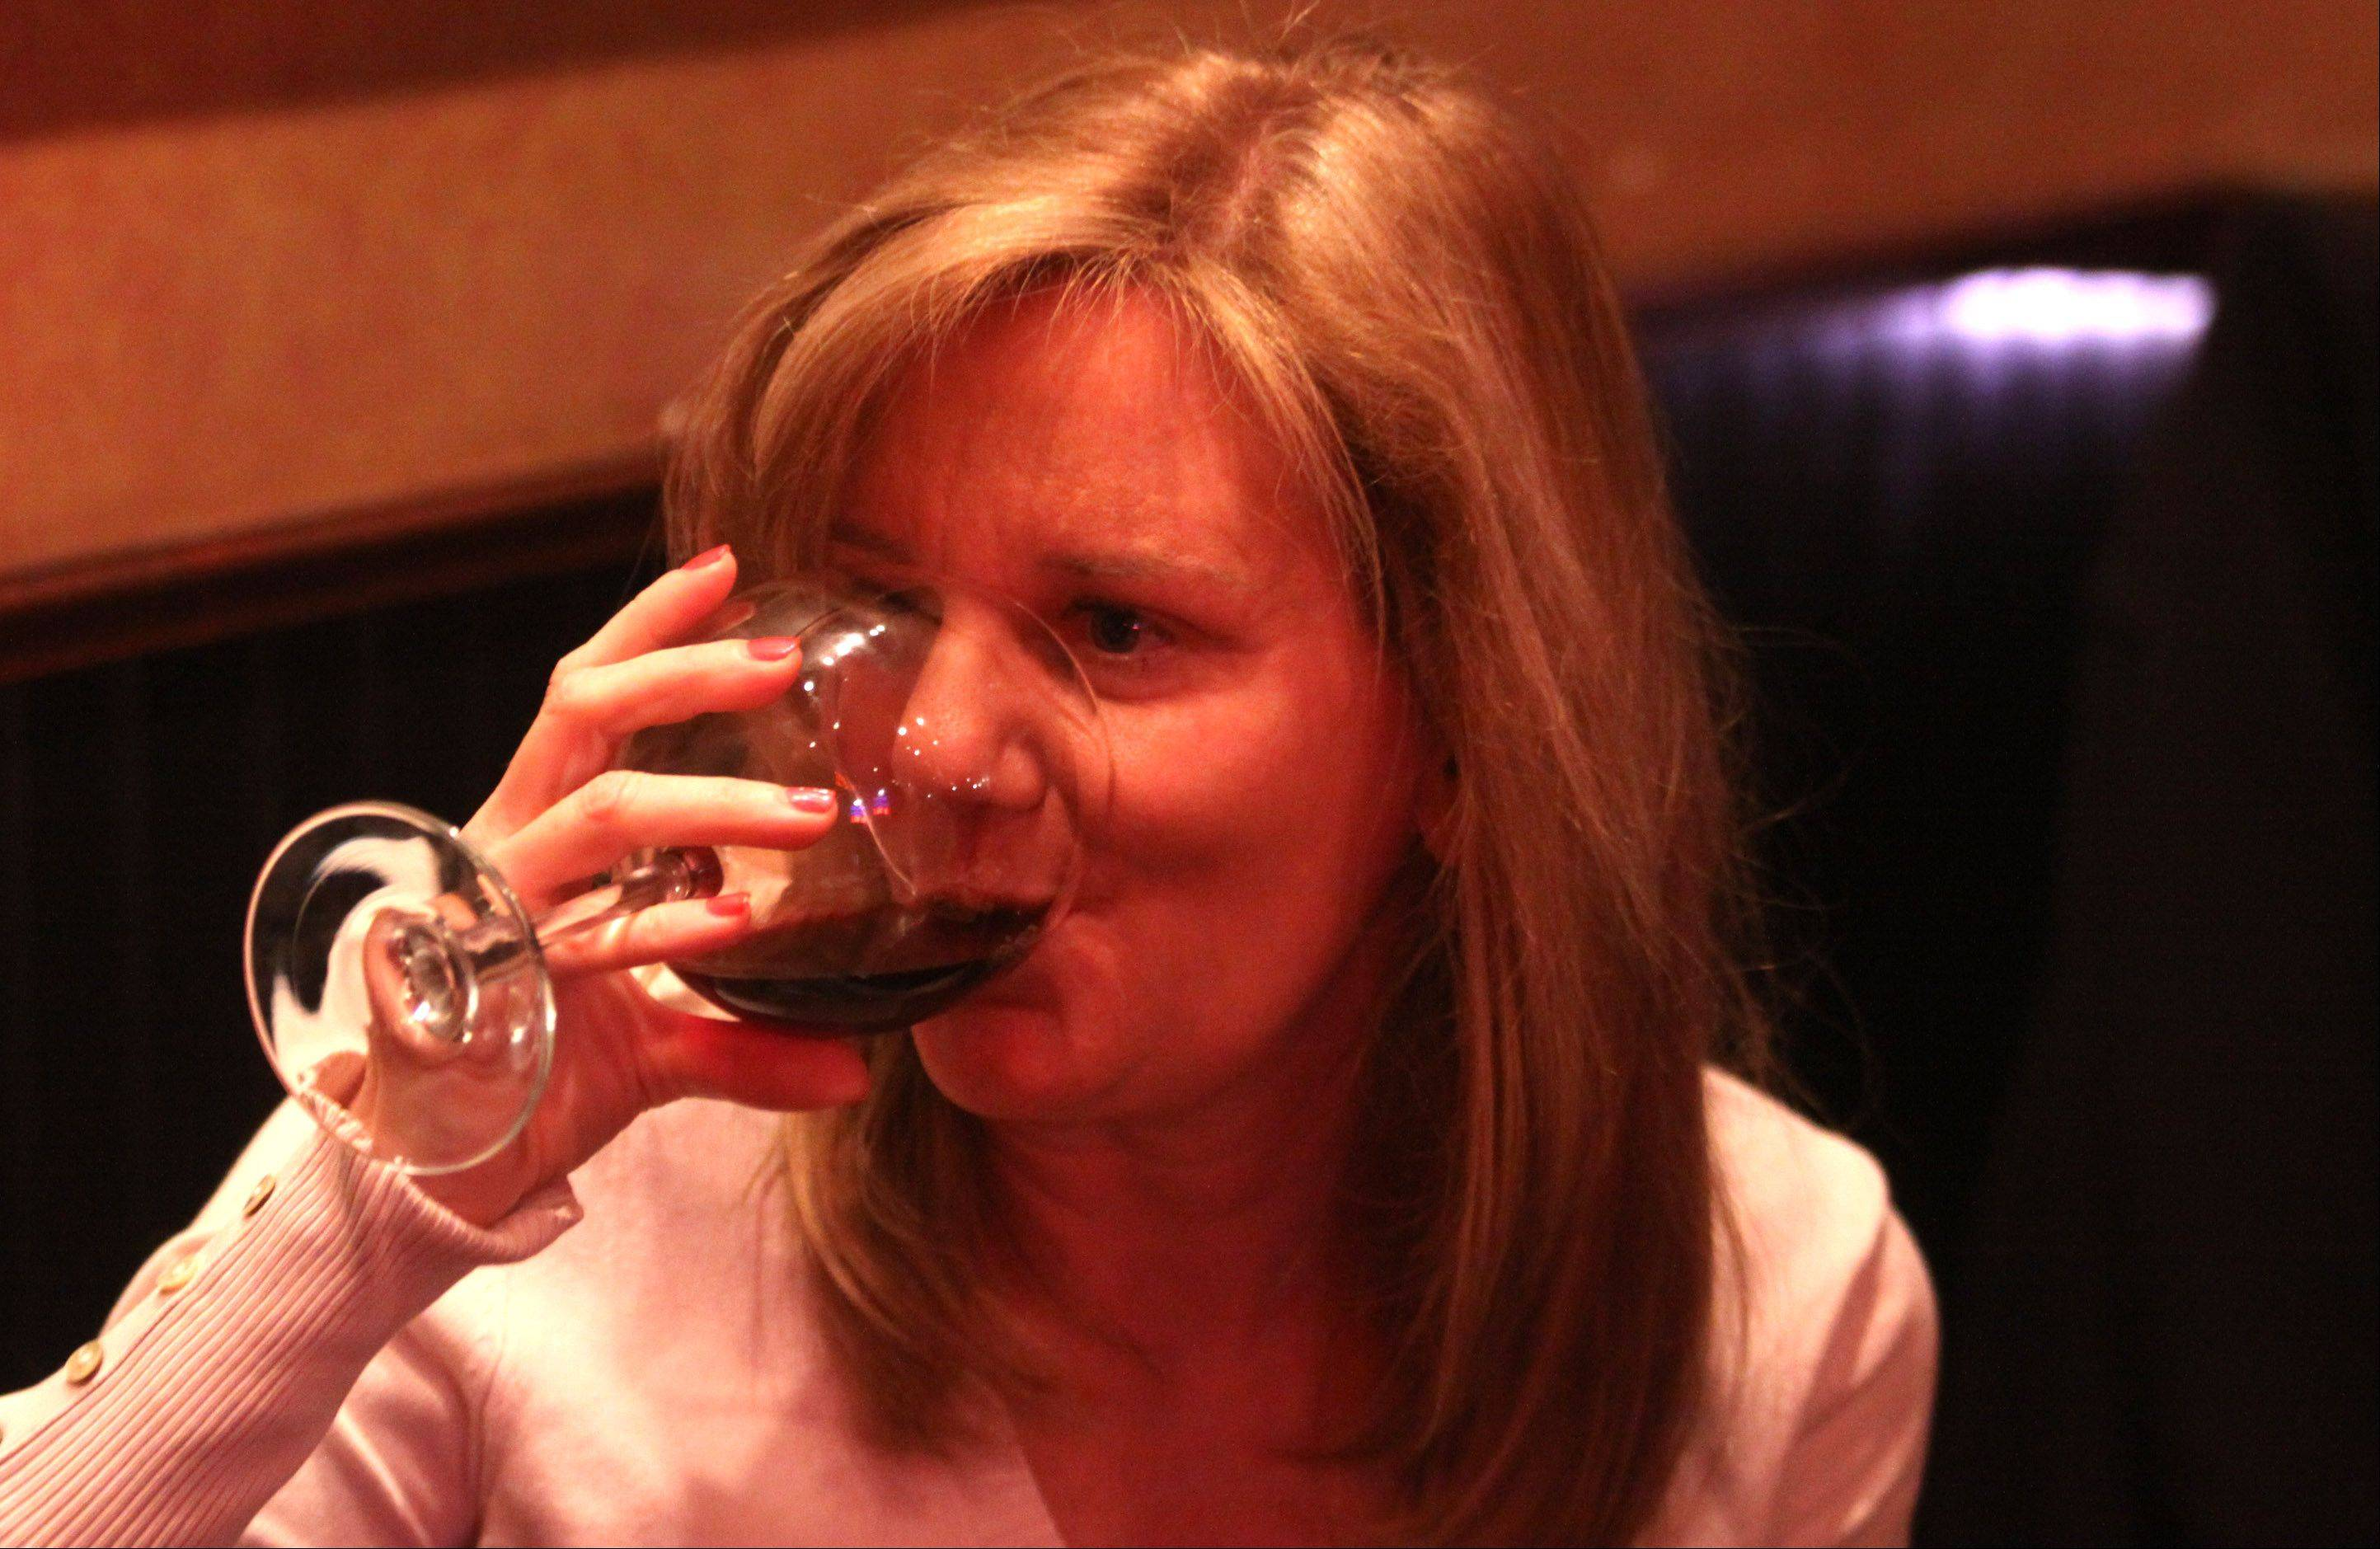 Vickie Reilly, of Arlington Heights, sips a glass of wine at the Tuscan Market Wine Bar in Arlington Heights.